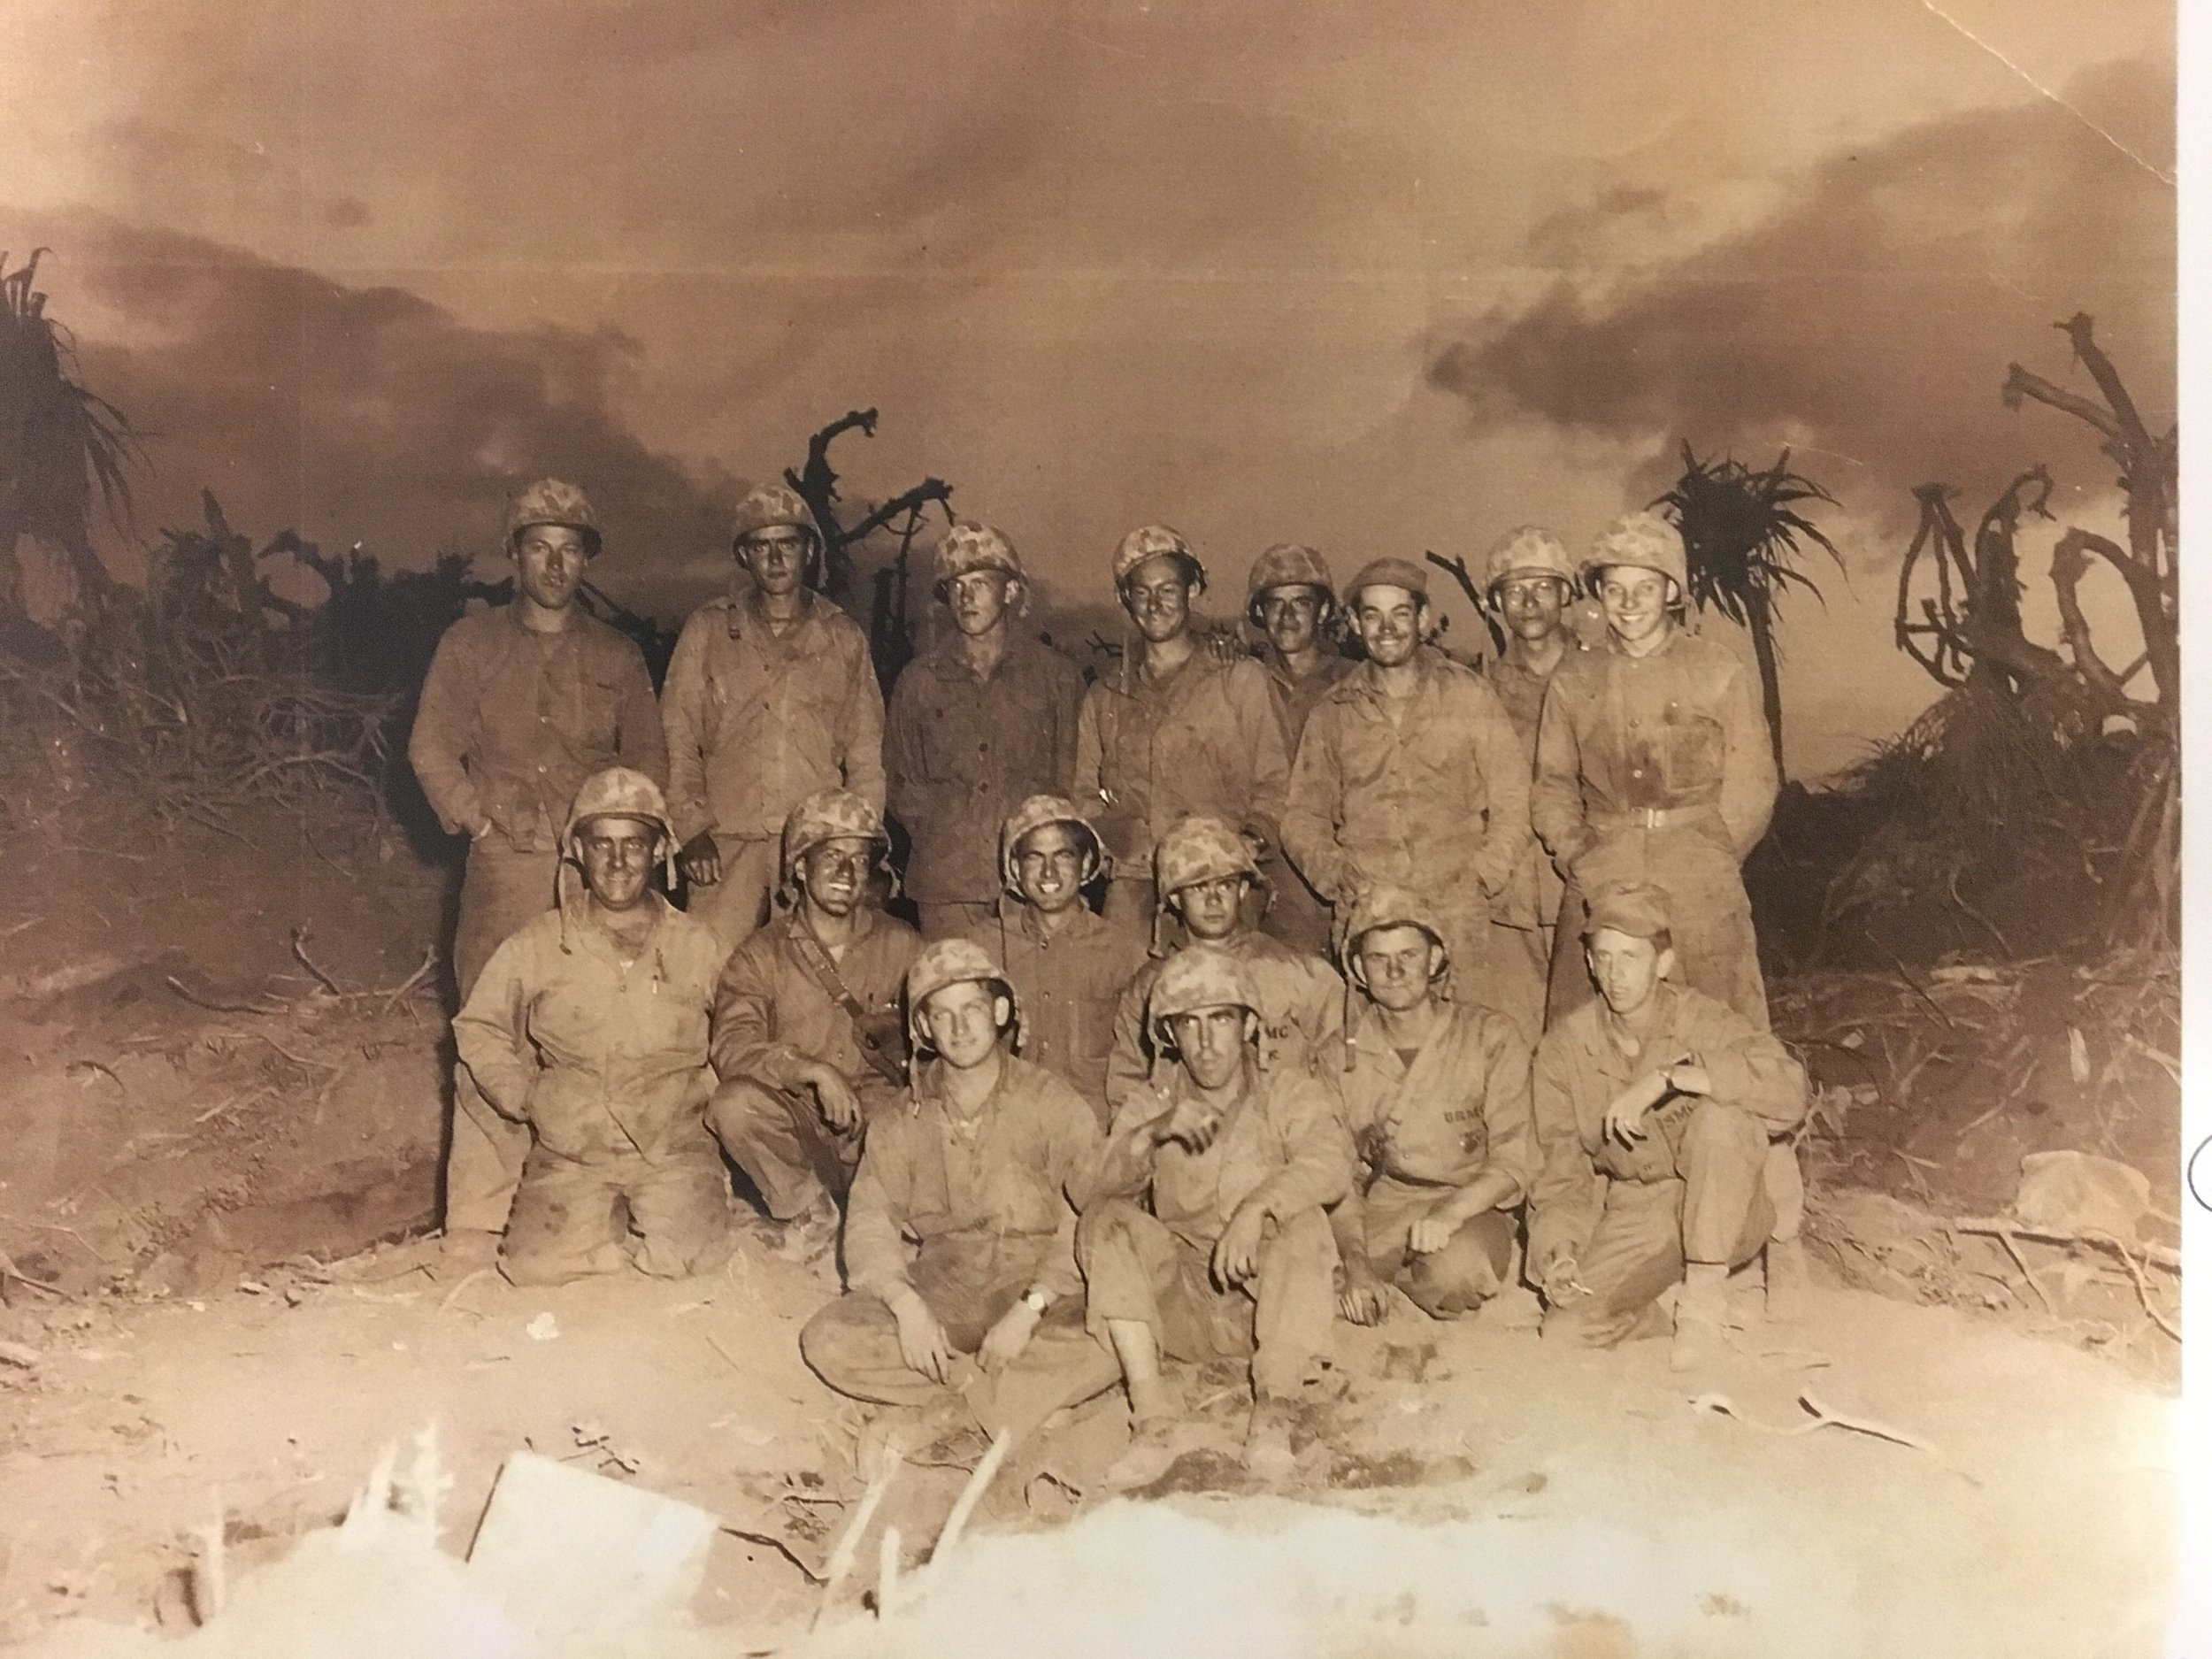 Harold is pictured in the second row, third from the left, on Iwo Jima.